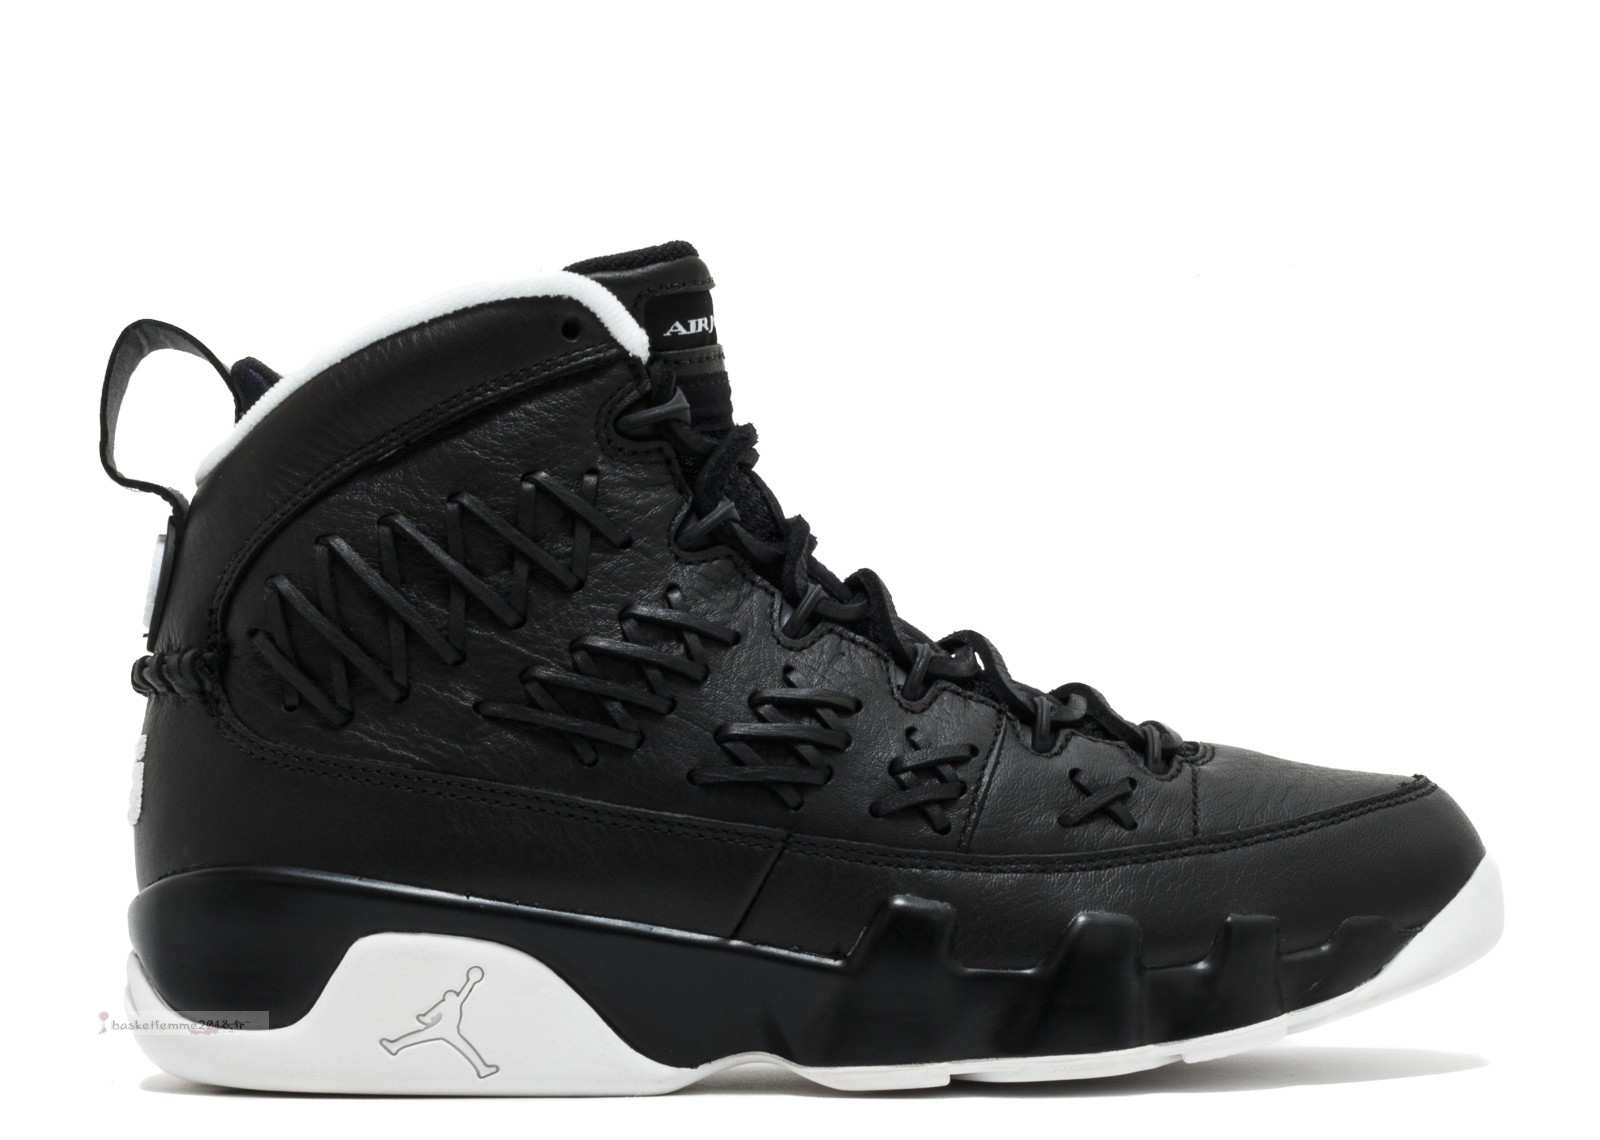 Air Jordan 9 Ret Pinnacle Pack Noir Blanc (ah6233-903) Chaussure de Basket